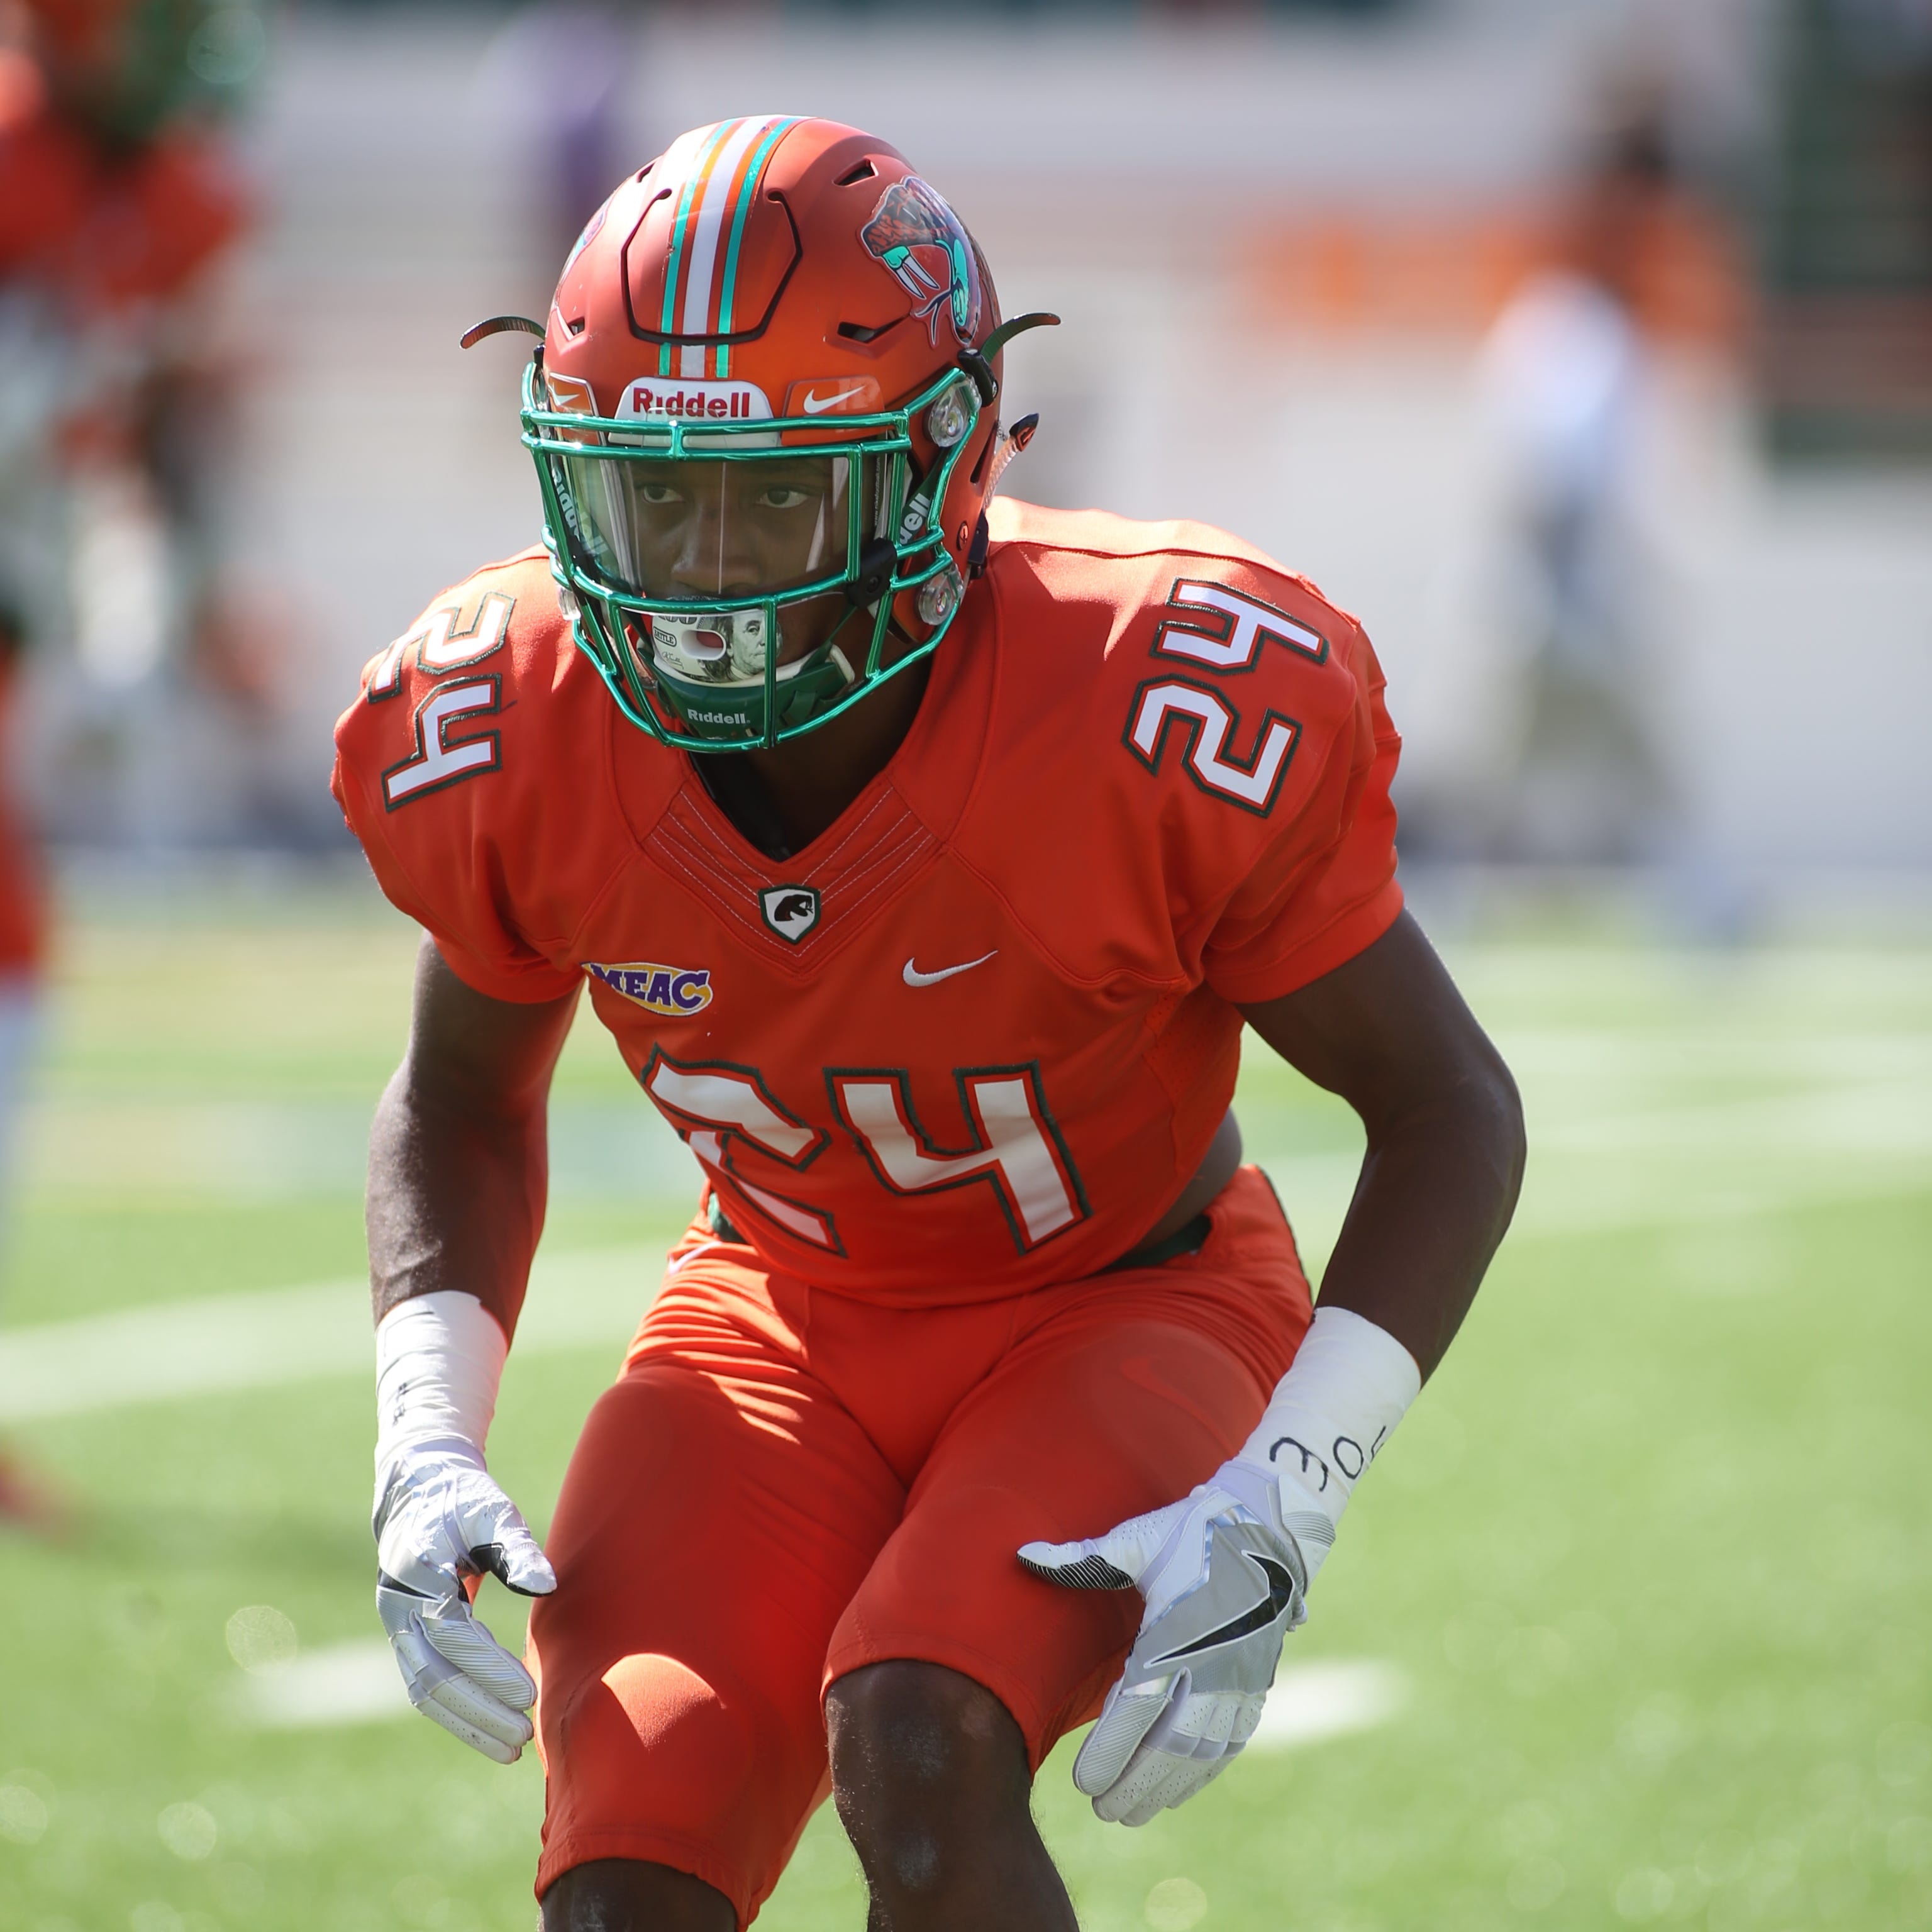 FAMU and N.C. A&T play for MEAC reign in controversial game